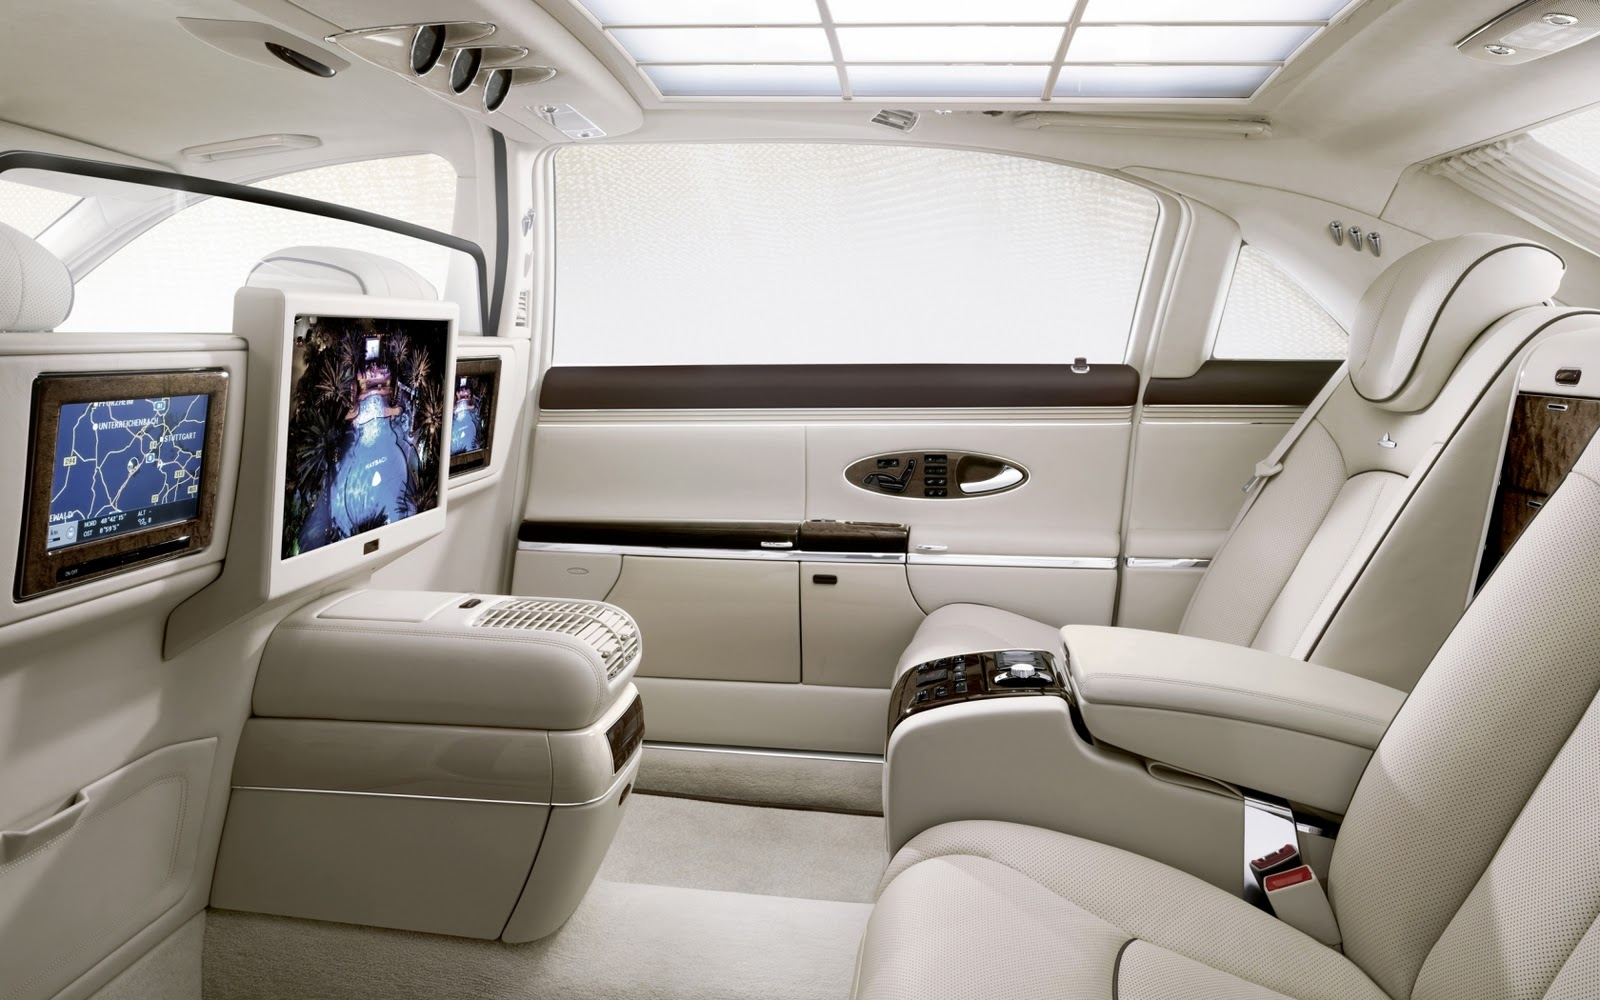 maybach interior 2012 cars n bikes. Black Bedroom Furniture Sets. Home Design Ideas